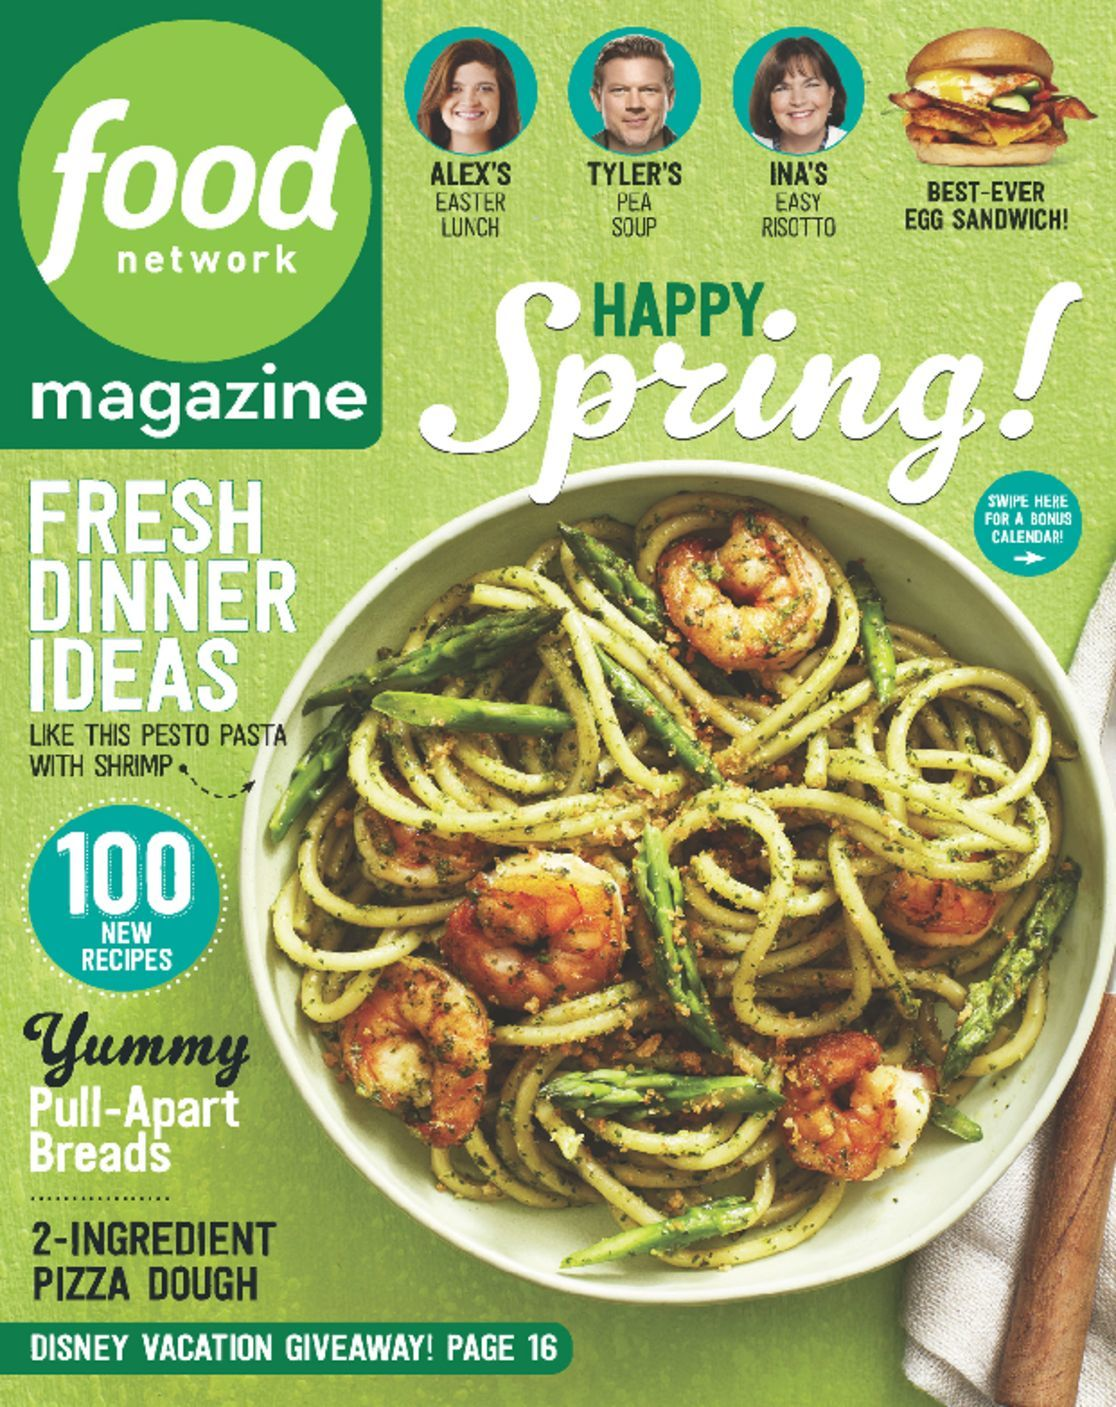 8524-food-network-Cover-2016-March-Issue